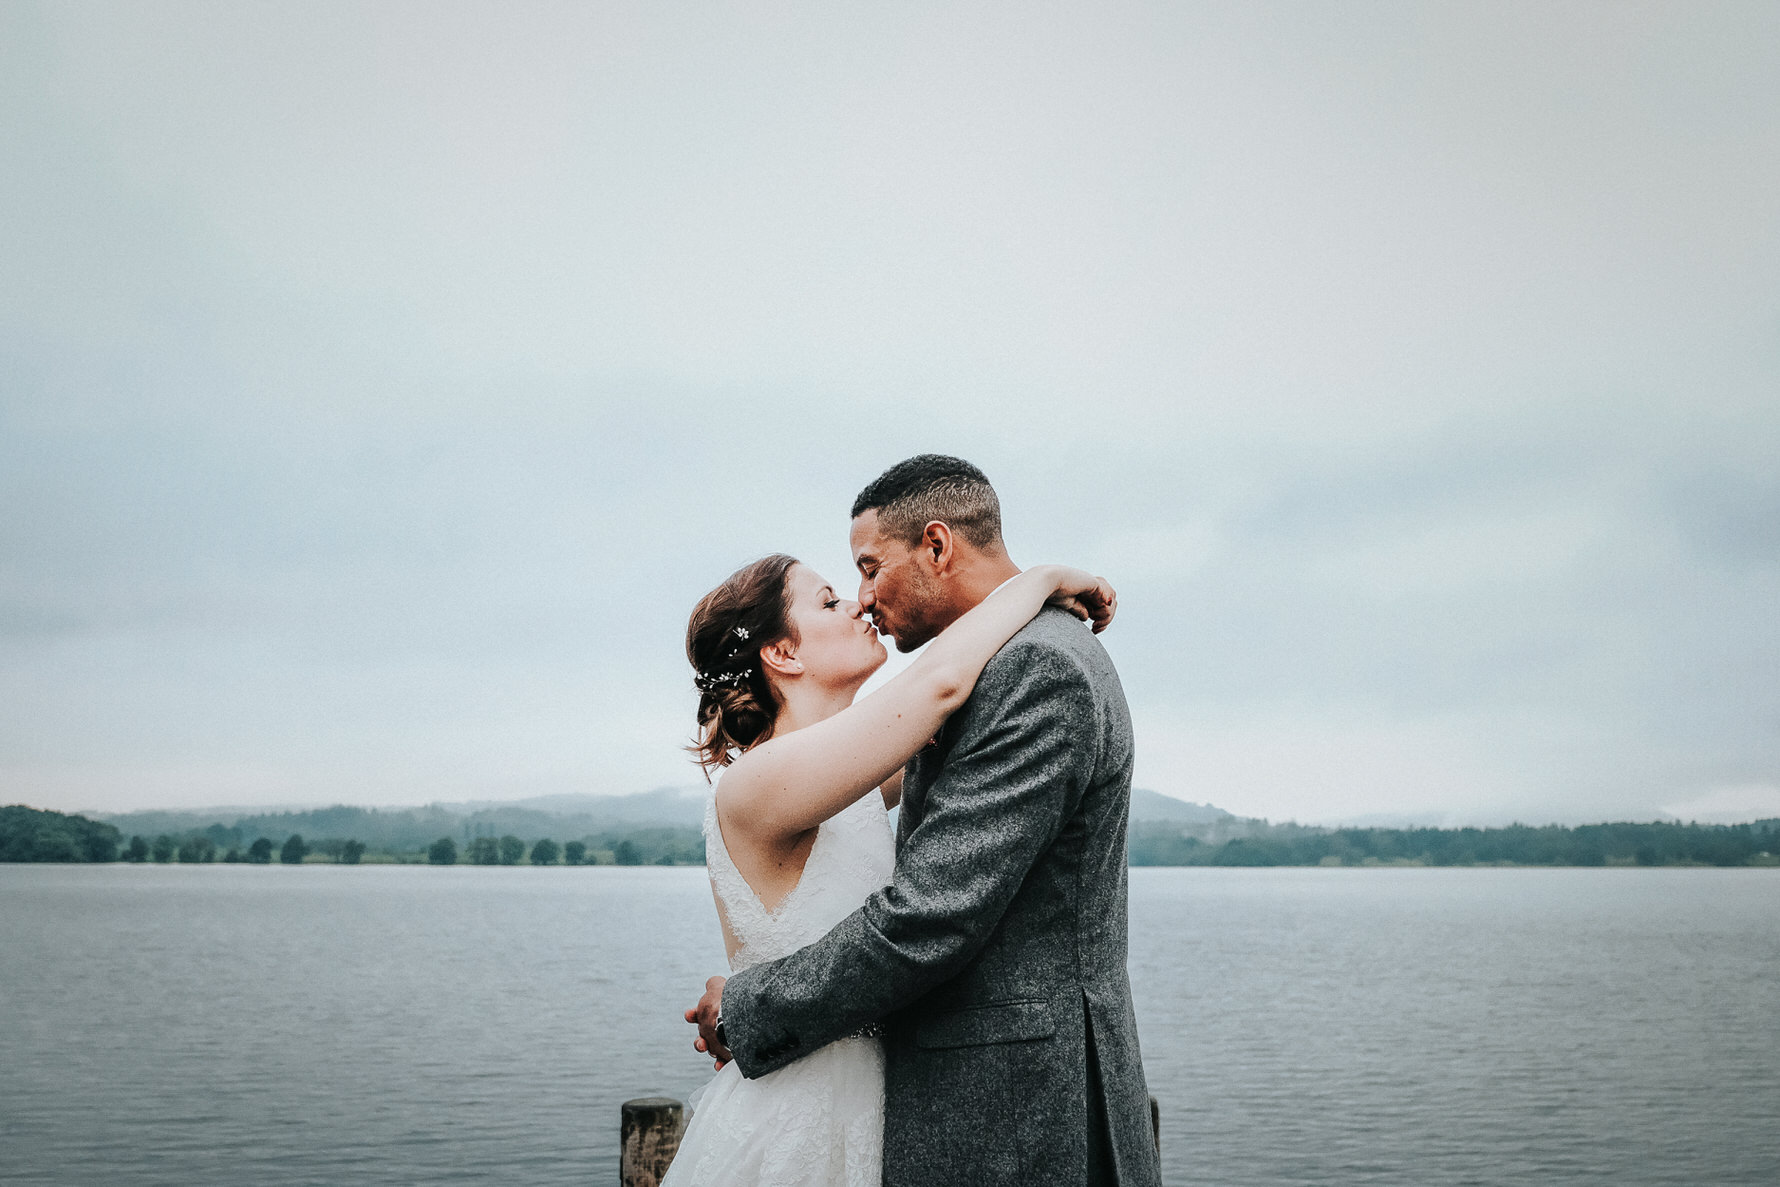 Natural Documentary Wedding Photography by Cheshire Wedding Photographer Louise Jacob